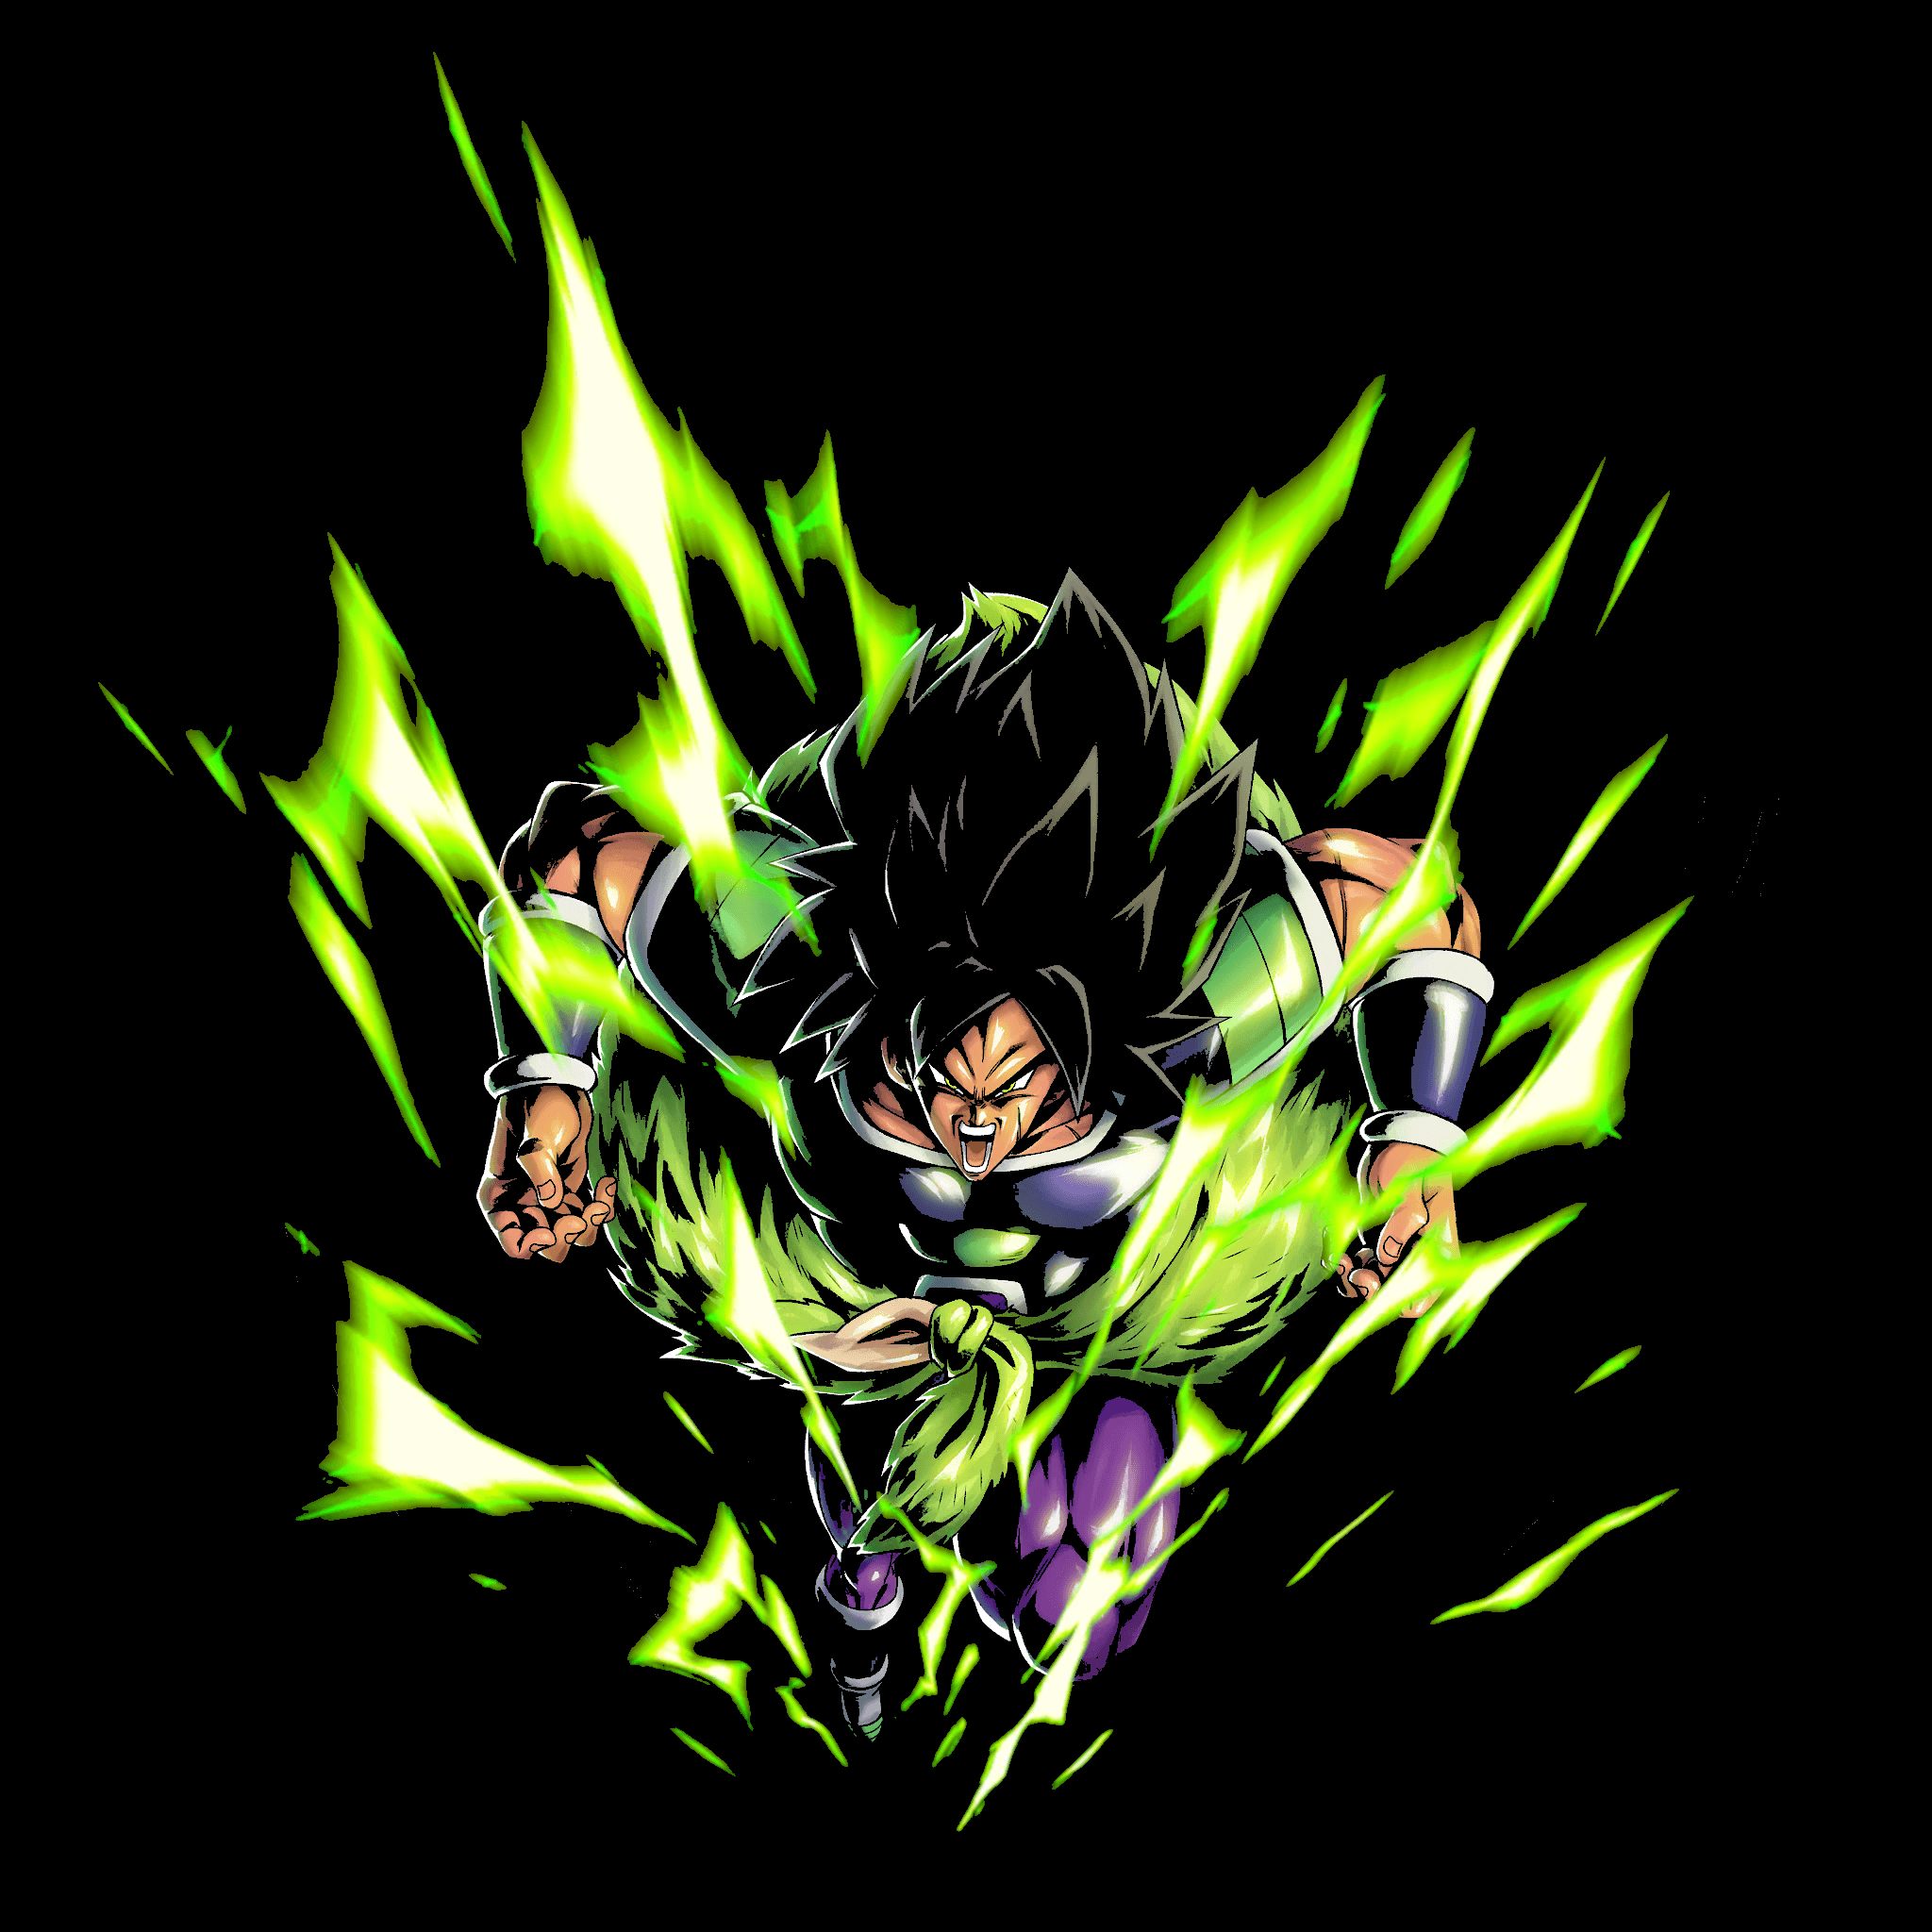 Broly Wallpapers - Top Free Broly Backgrounds ...